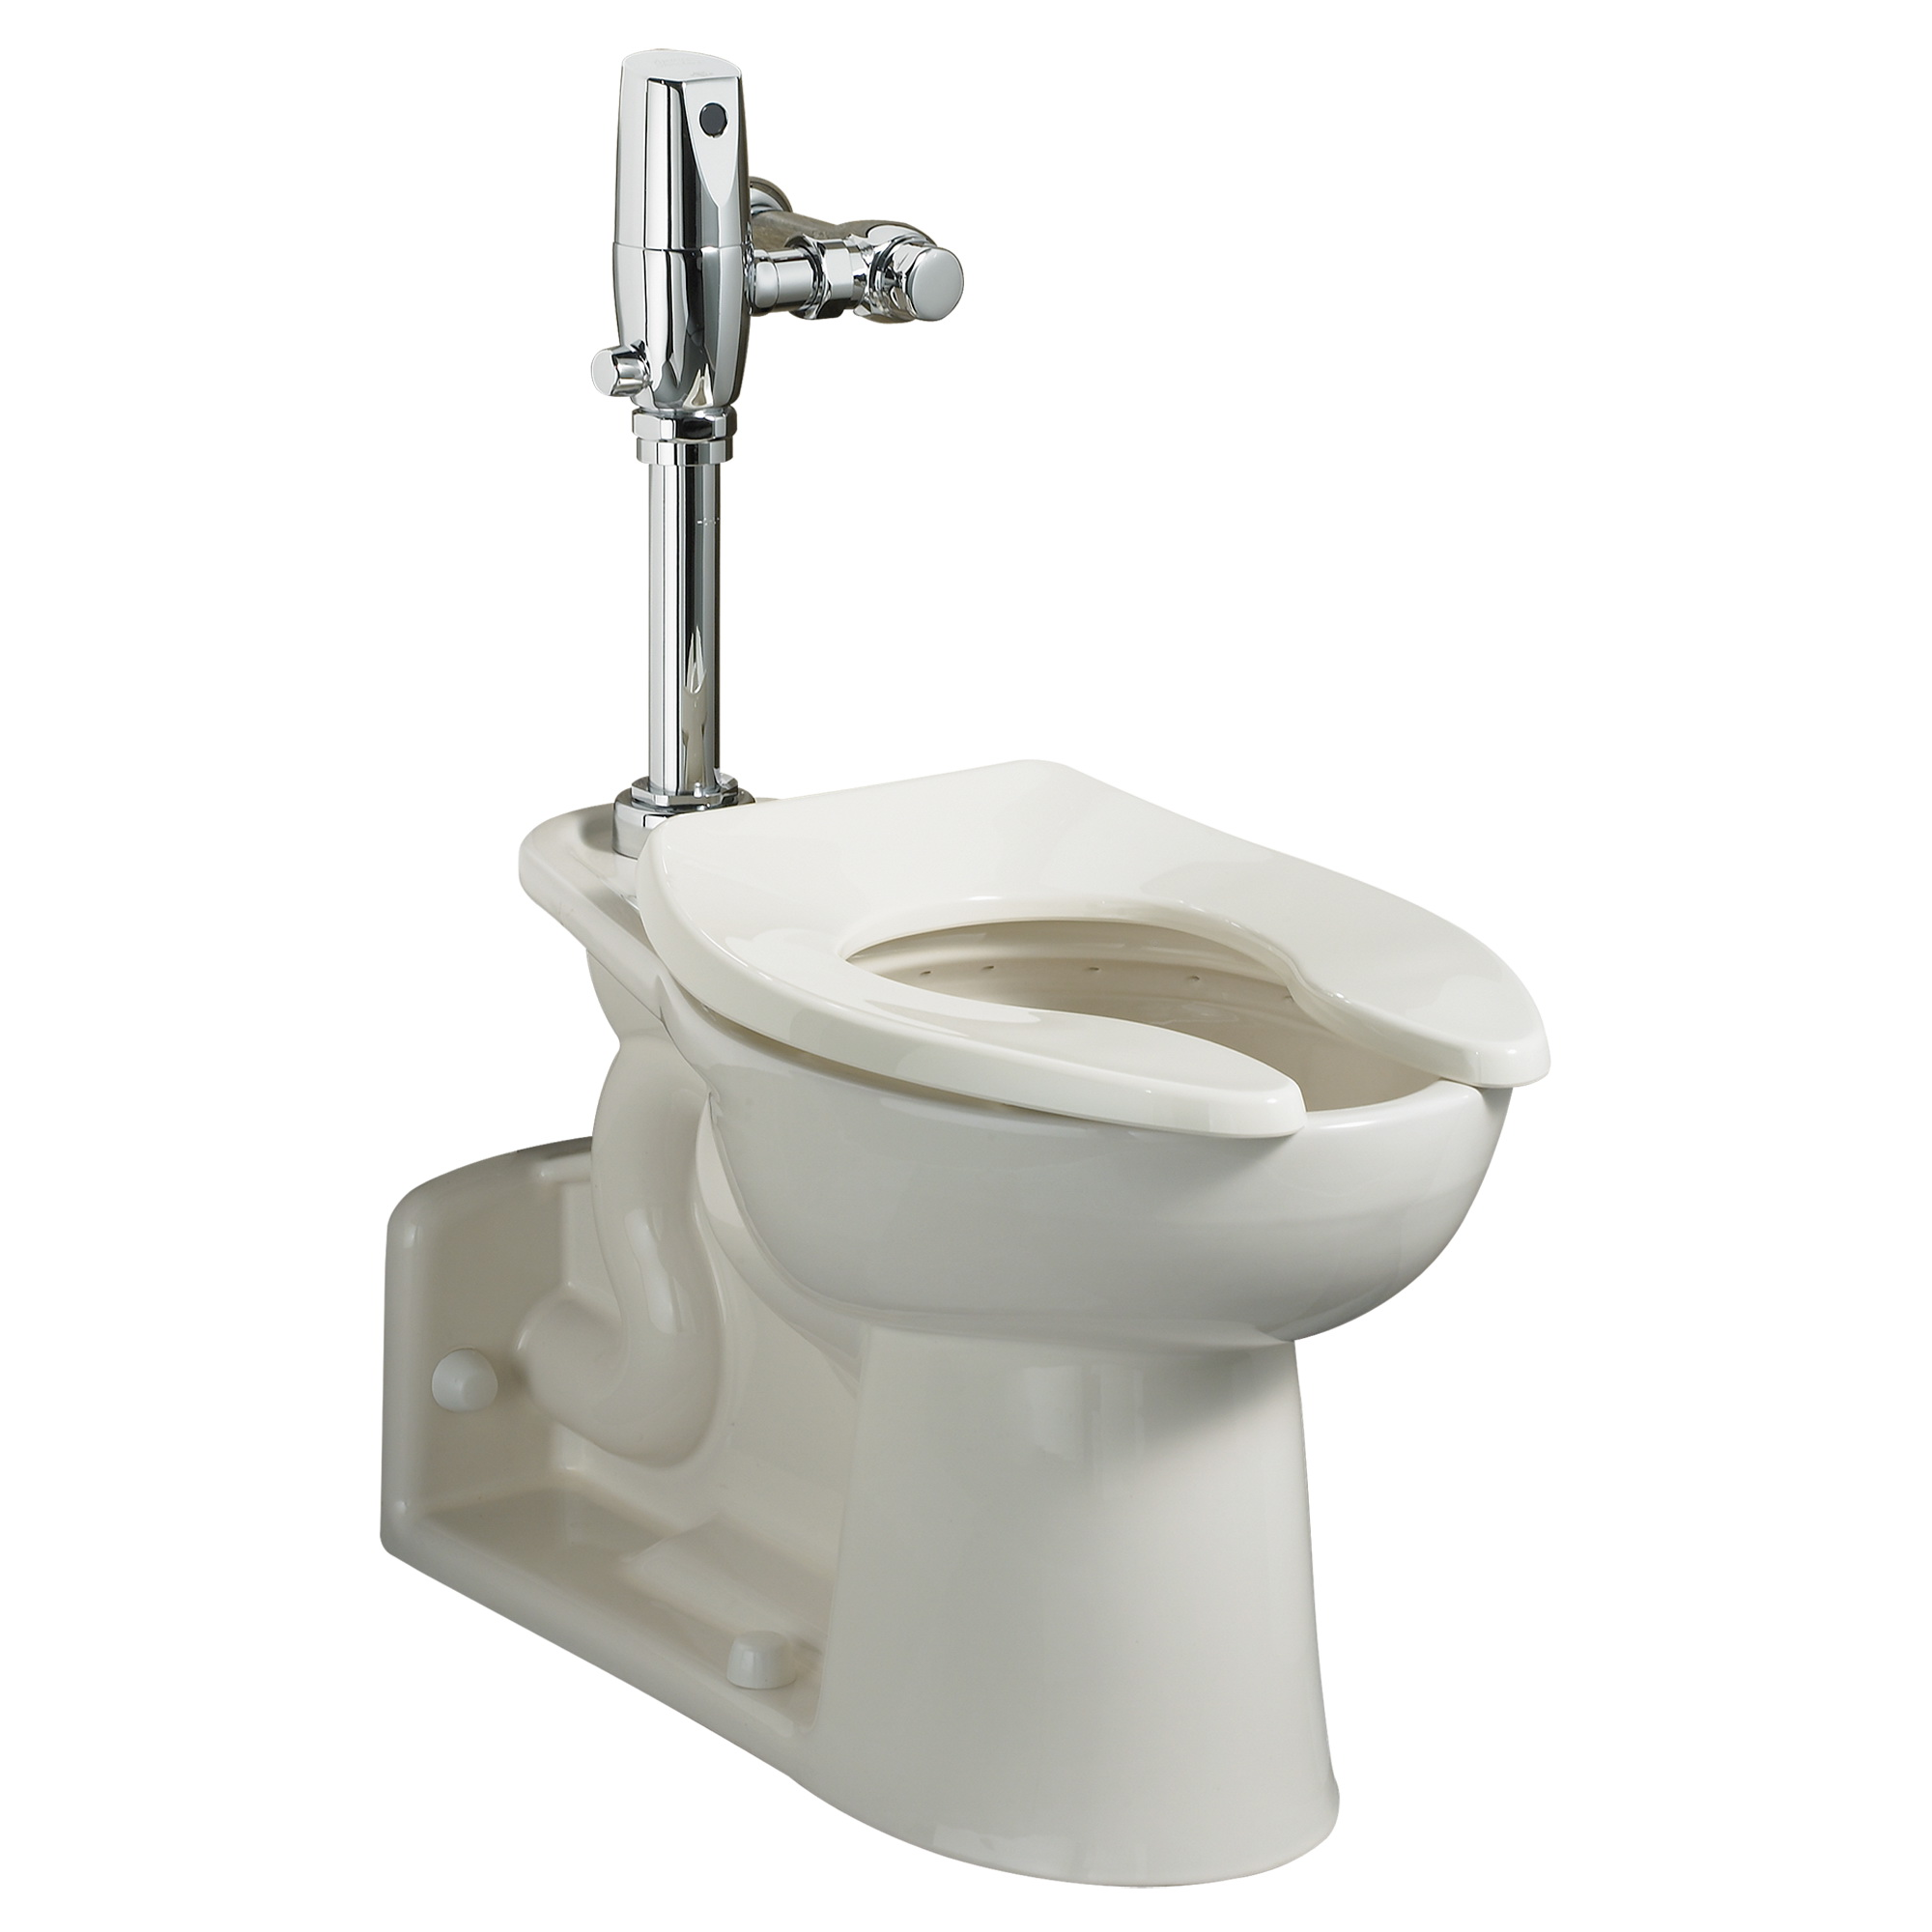 American Standard Priolo® FloWise® 3695.001.020 White Vitreous China Elongated Toilet Bowl, 12 in Rough-In, 1.1 - 1.6 gpf